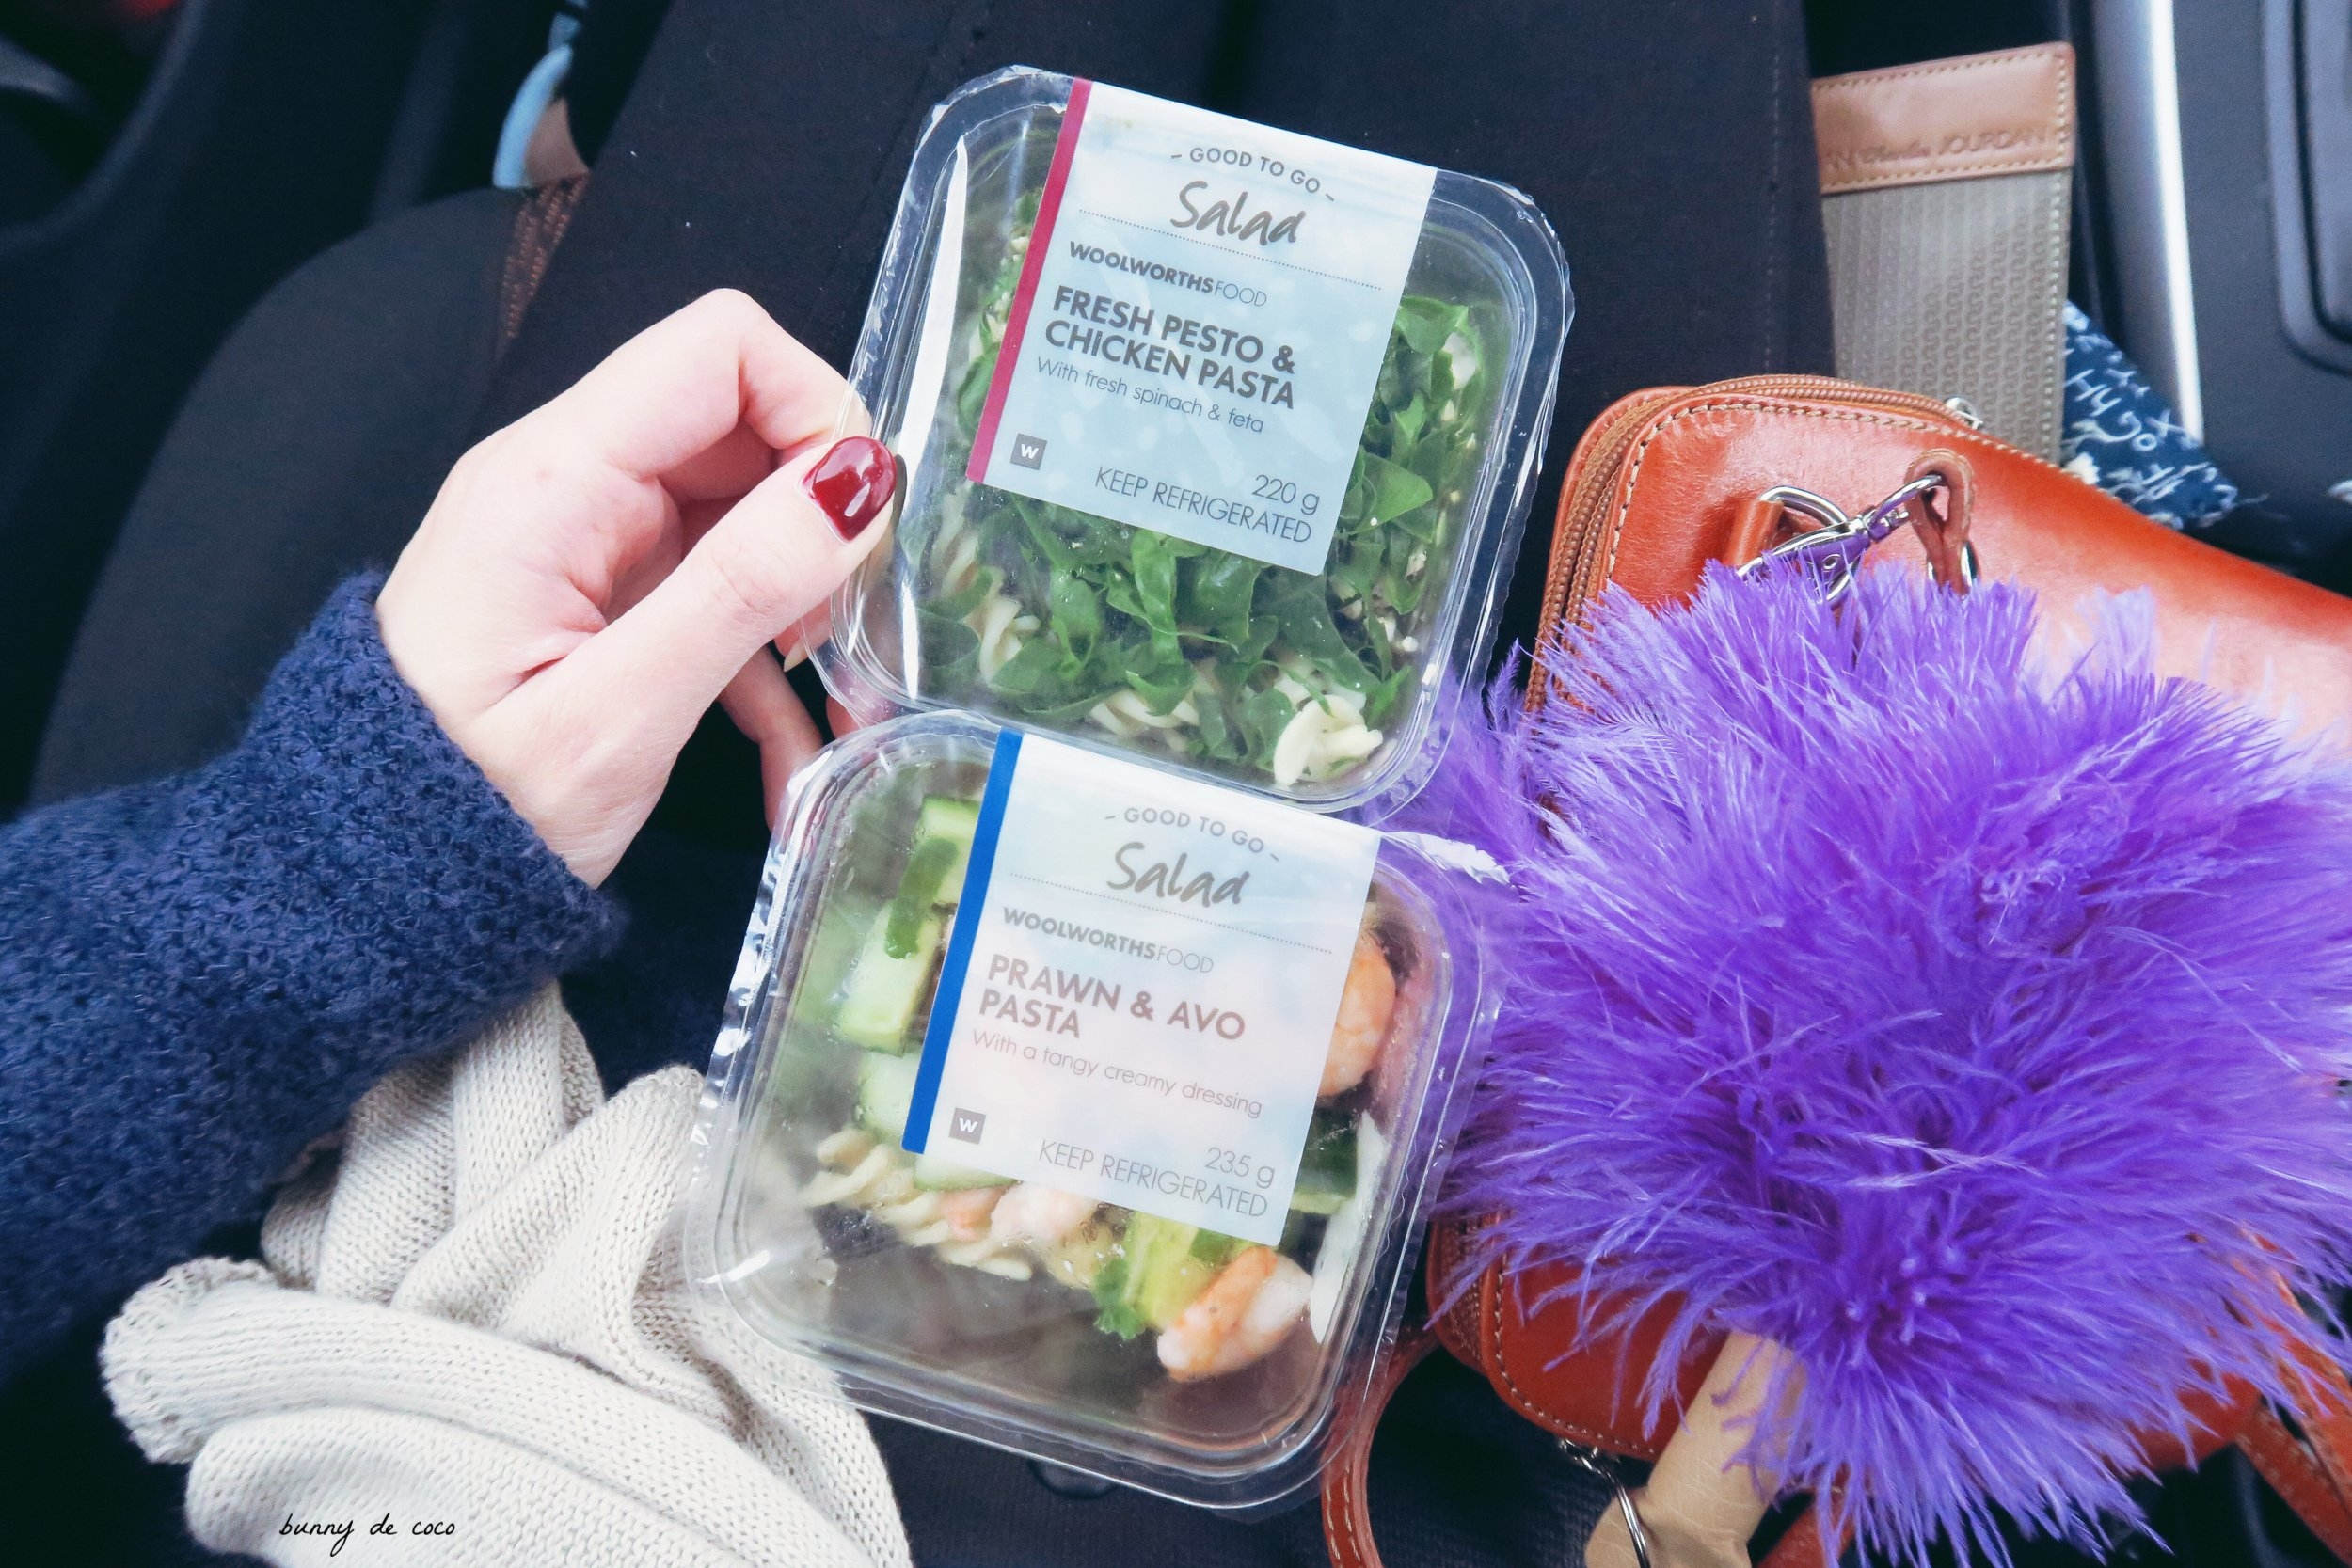 Delish salads from my bff, Woolies. I could eat these everyday.